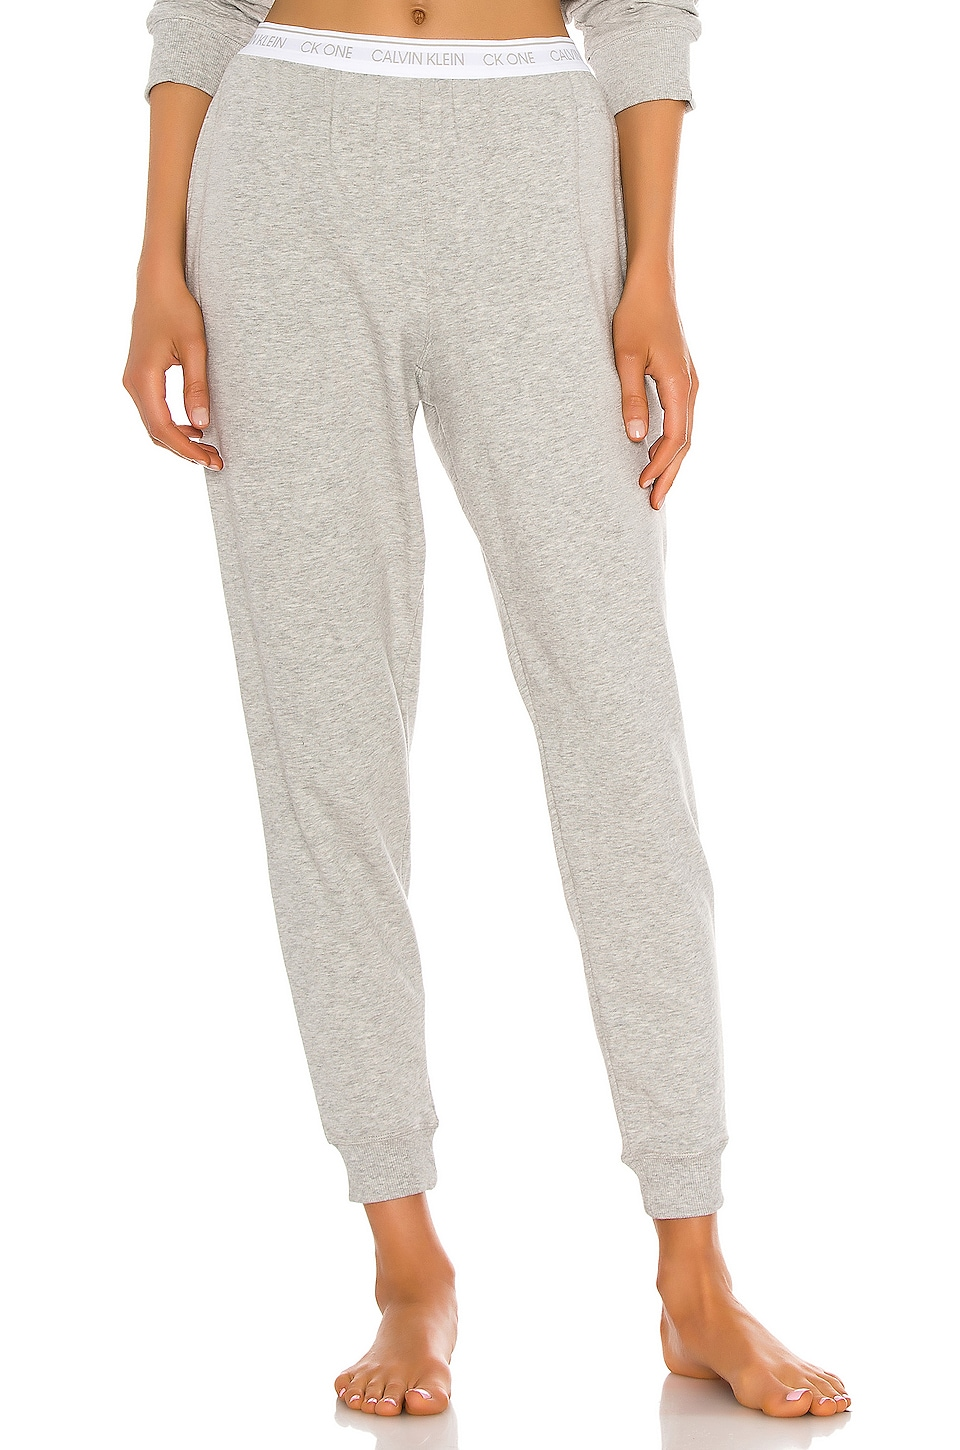 One Basic Lounge Sweatpant                     Calvin Klein Underwear 7